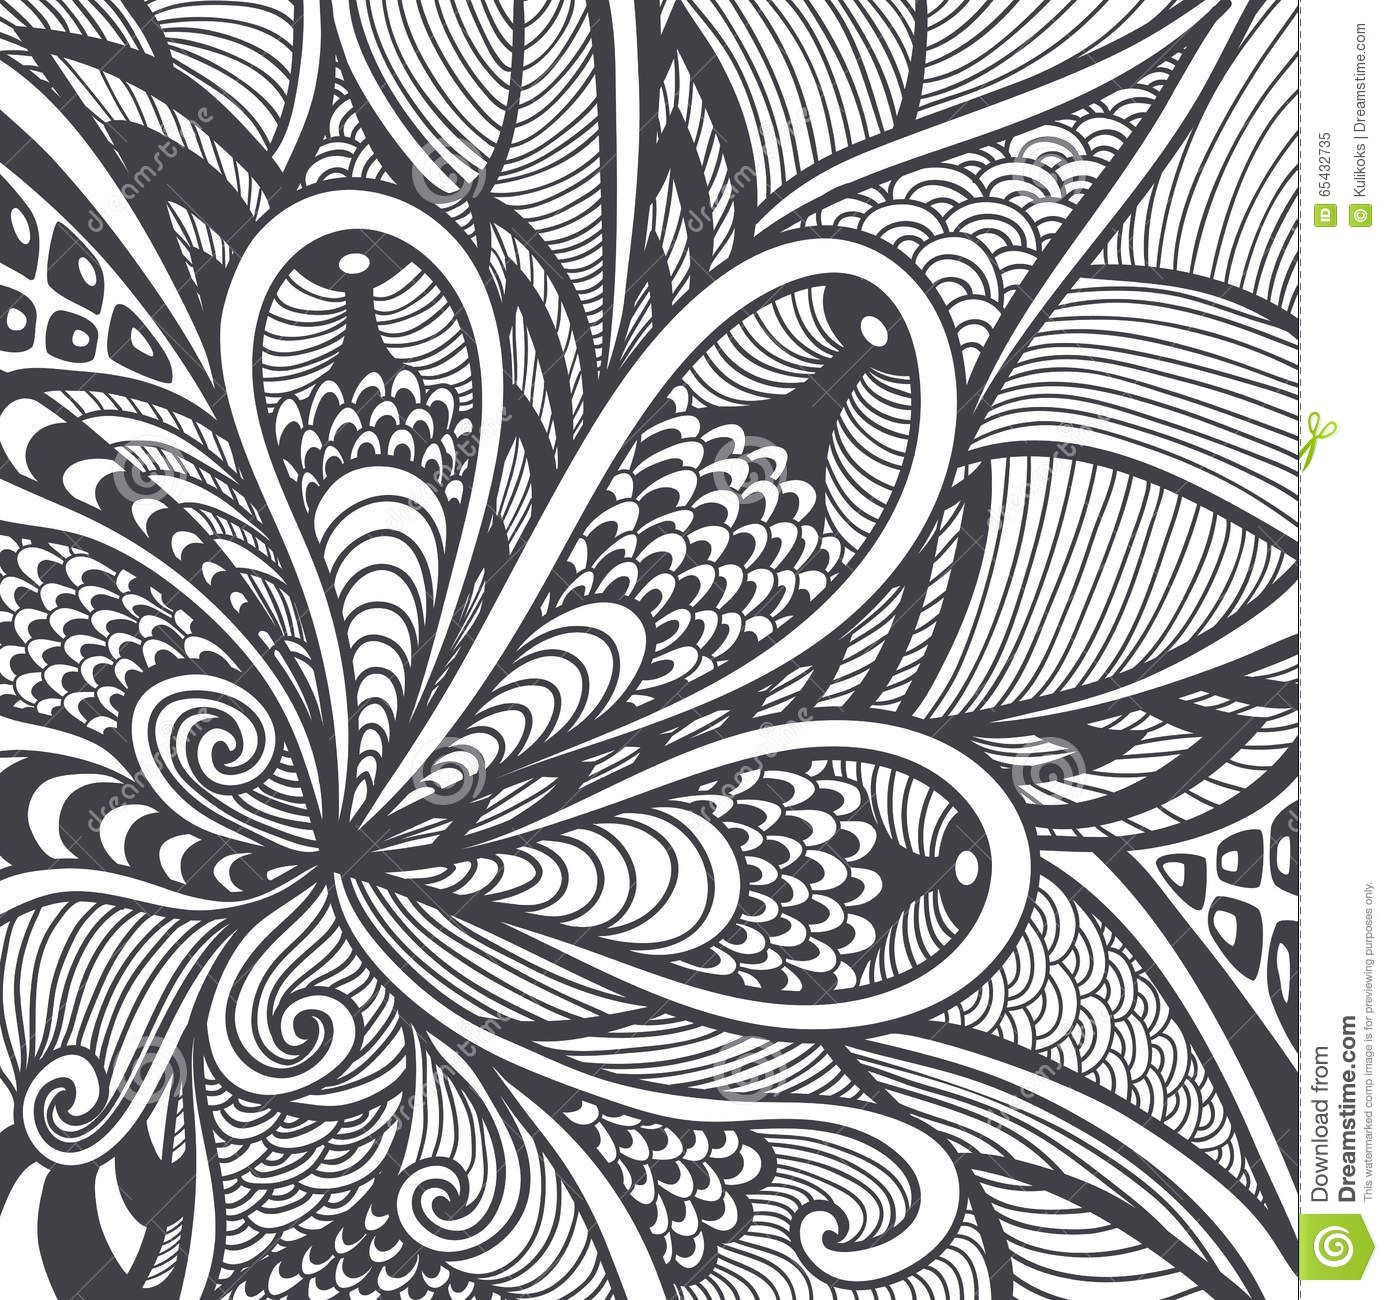 Thumbsdreamstime Z Abstract Pattern Zen Tangle